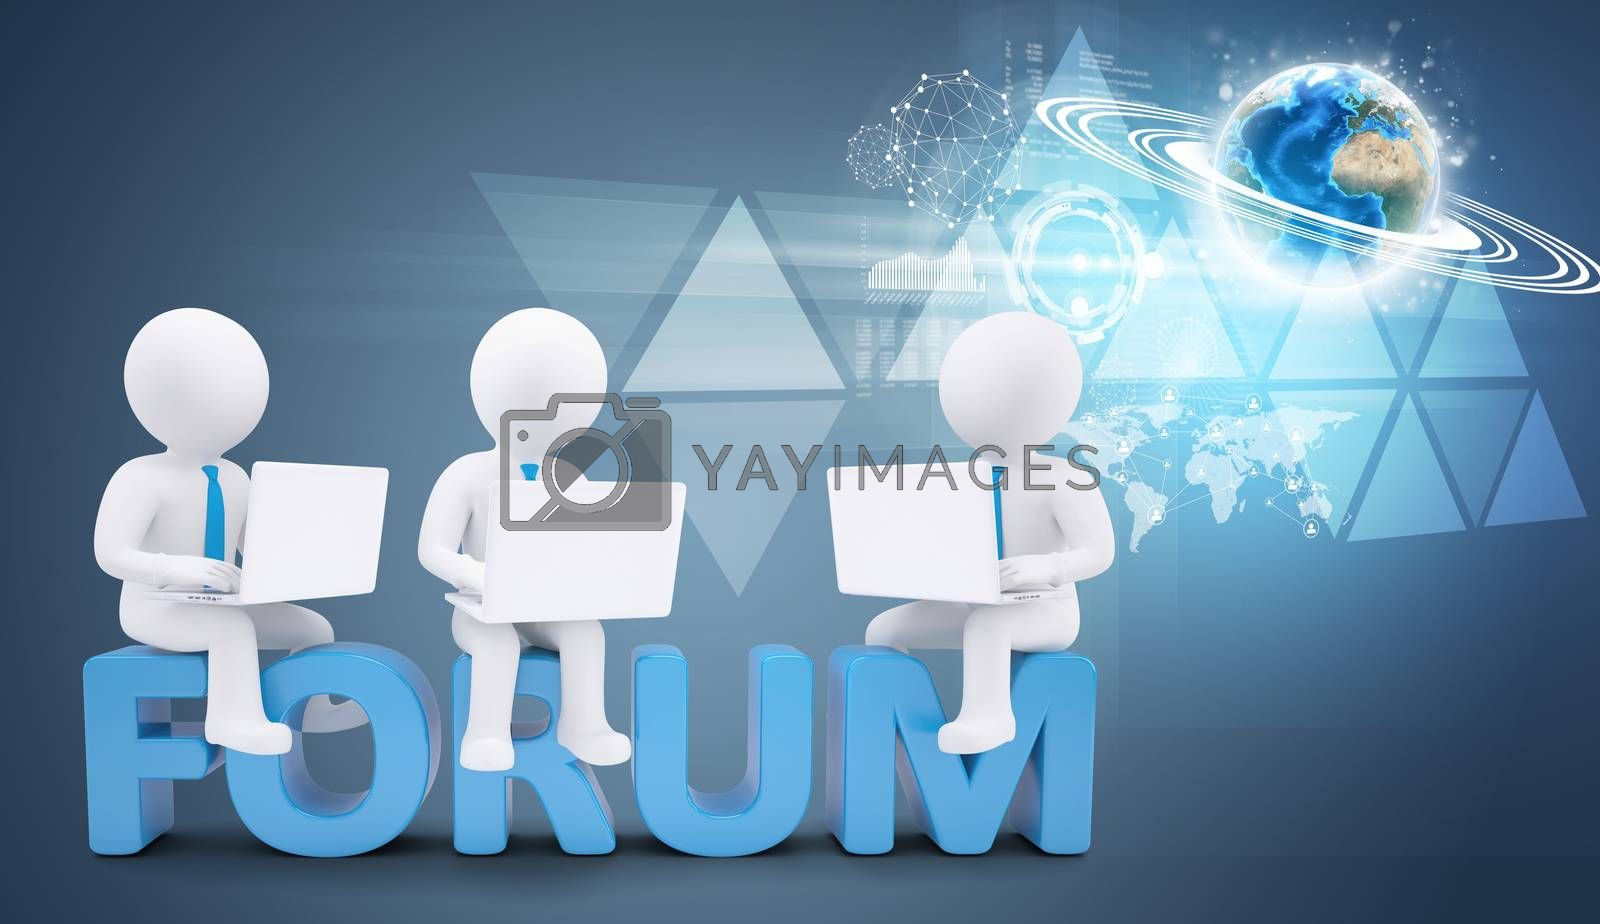 Team of white people with ties and laptops sitting on forum. Background earth globe with wire-frame. Elements of this image furnished by NASA